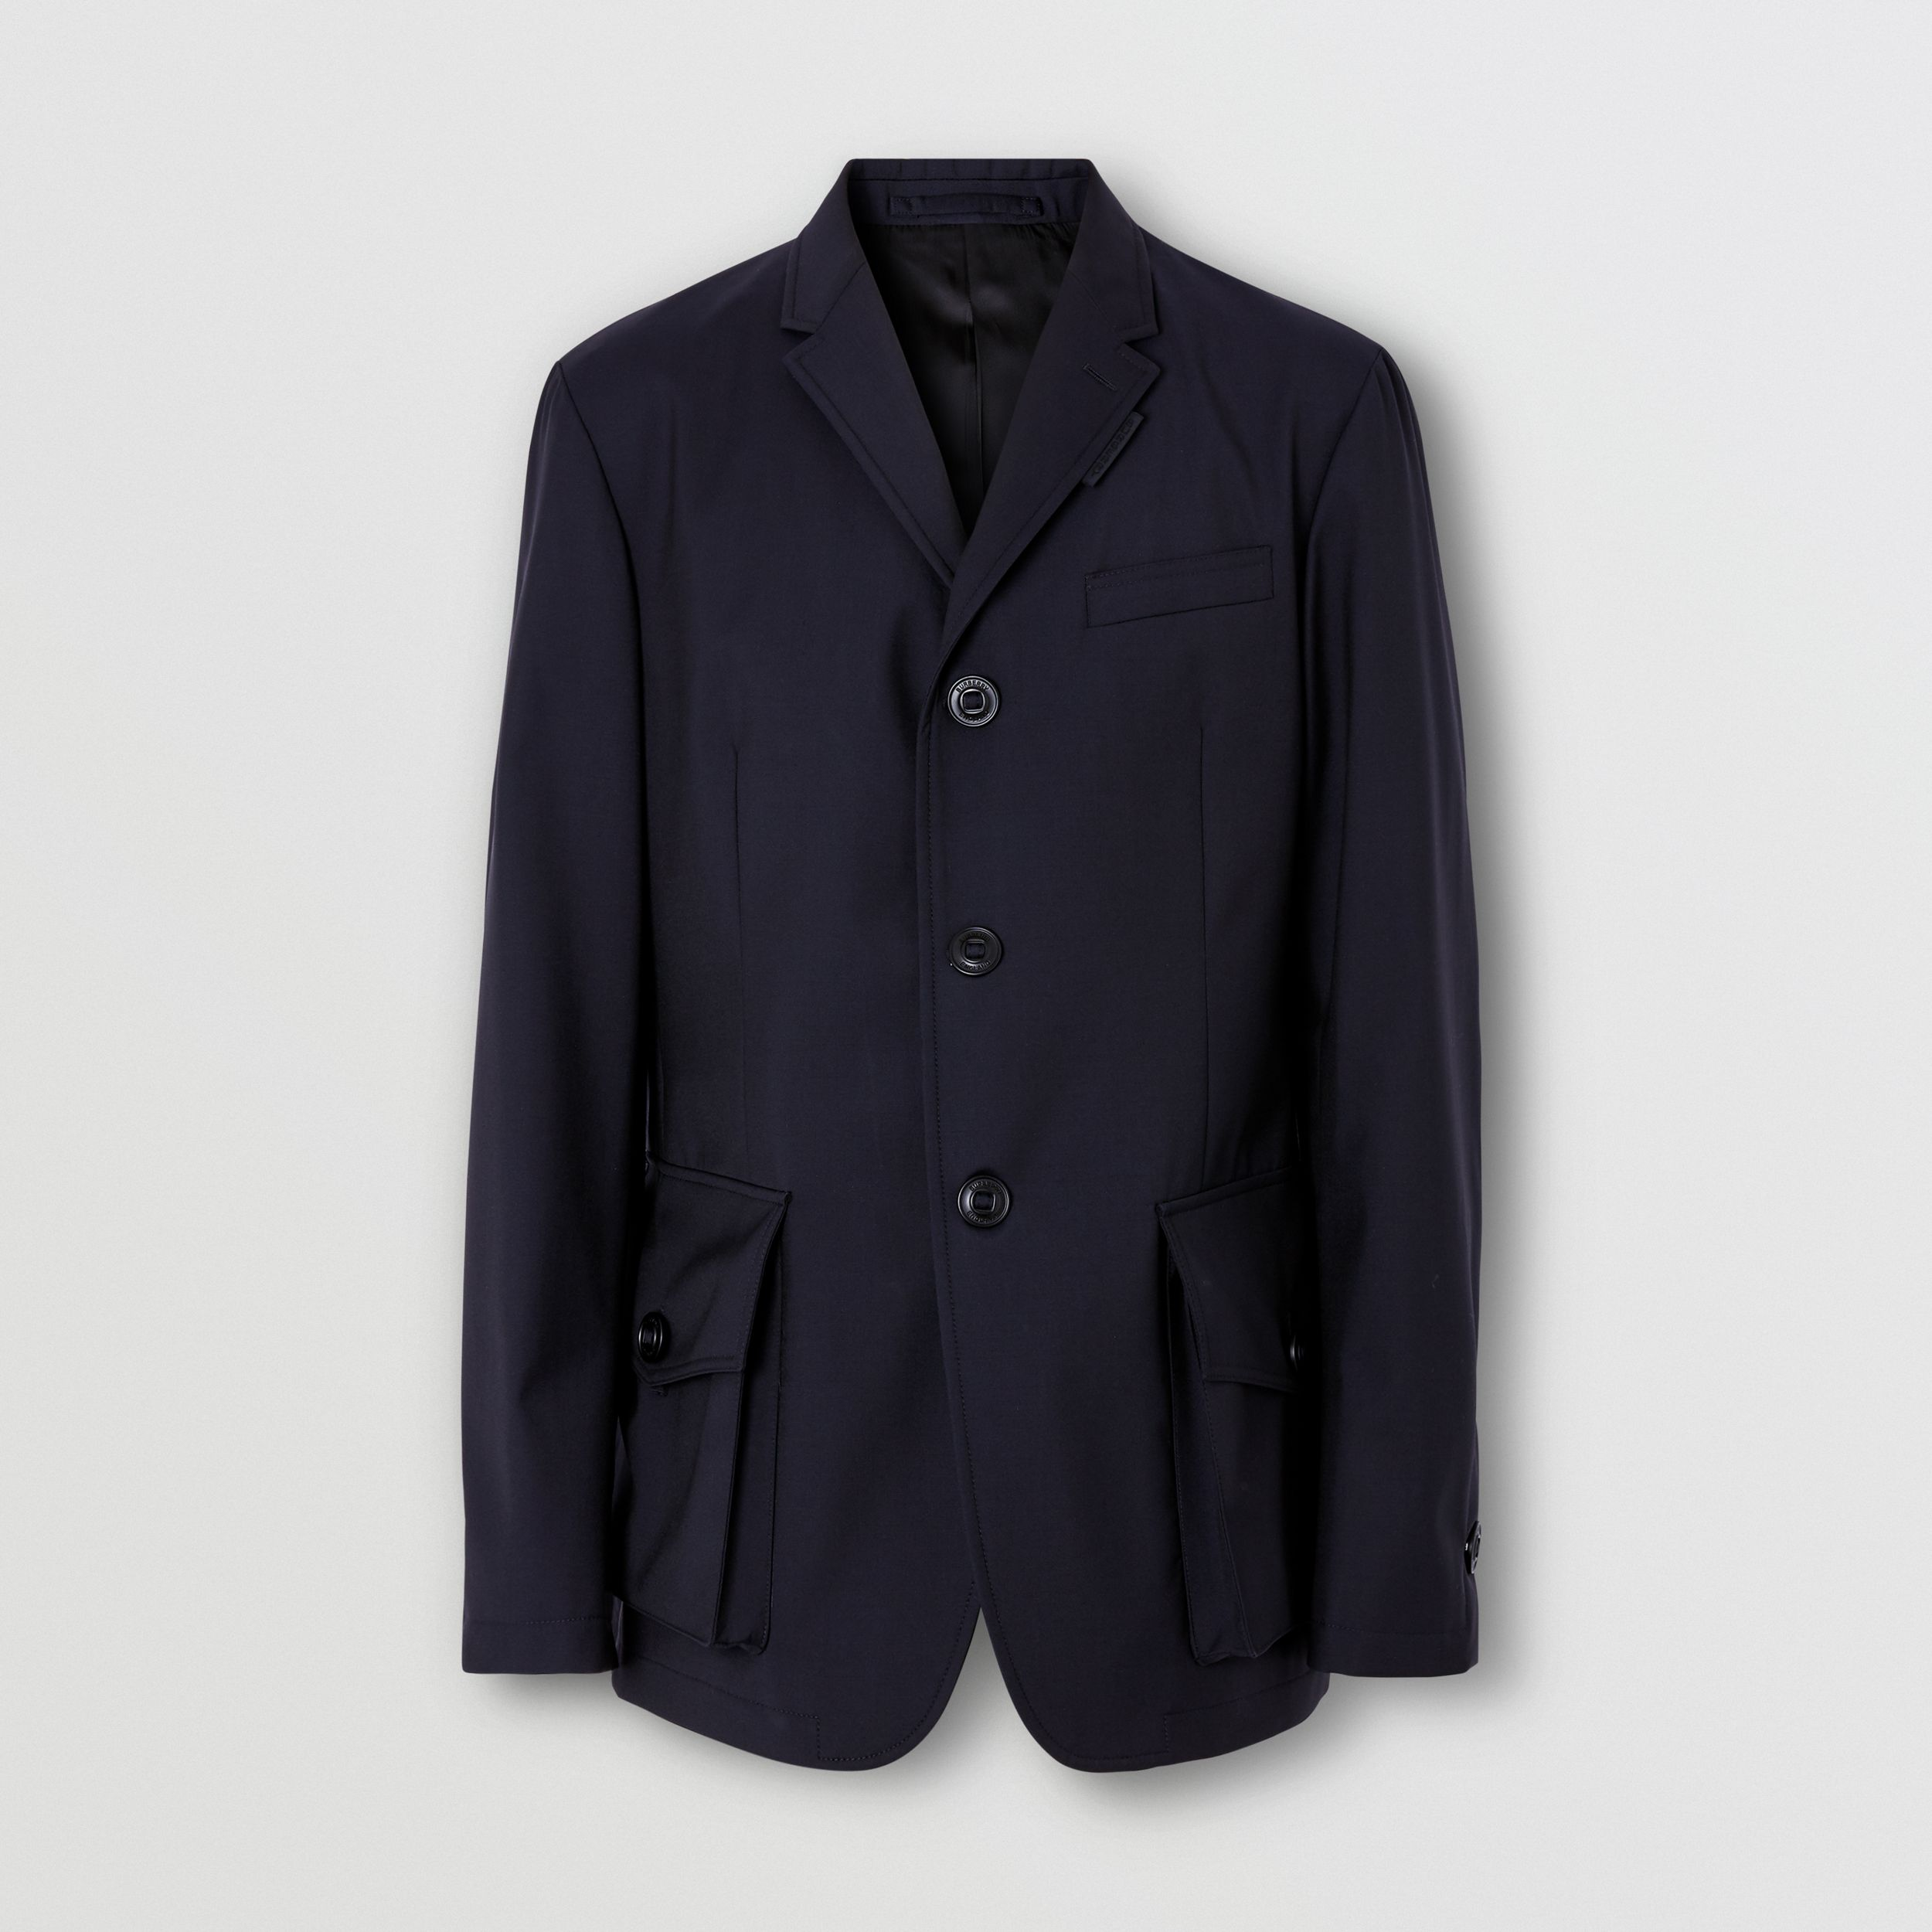 Bonded Wool Tailored Jacket in Navy - Men | Burberry Hong Kong S.A.R. - 4